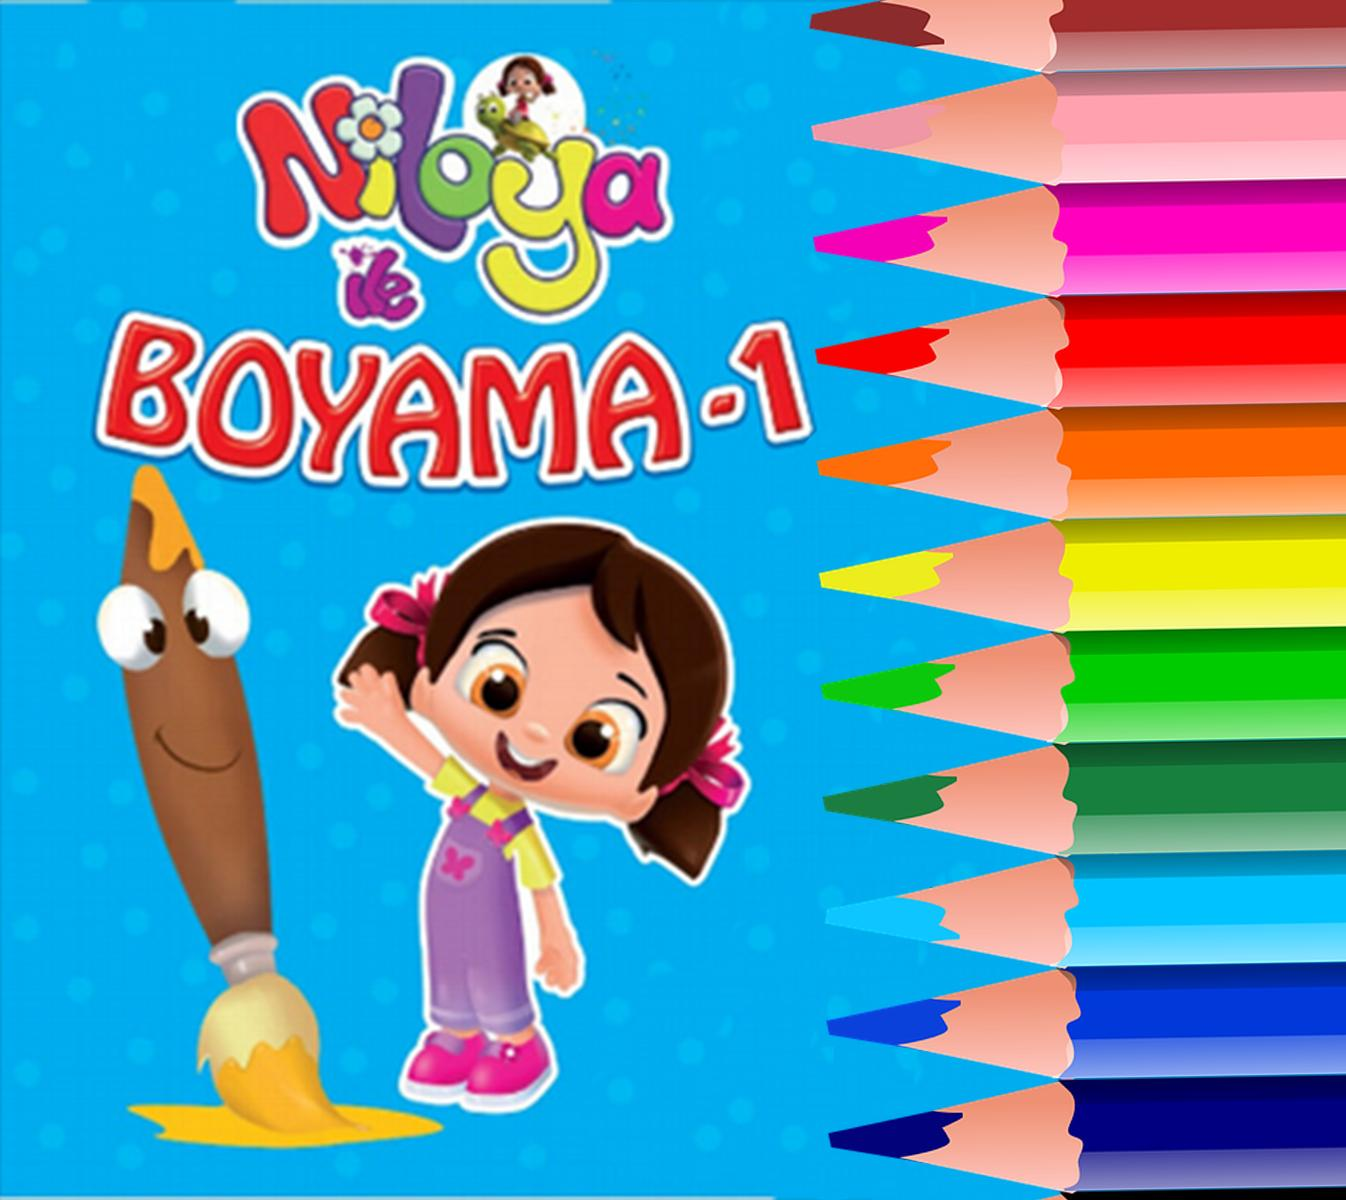 Niloyaa Boyama Oyunlari For Android Apk Download